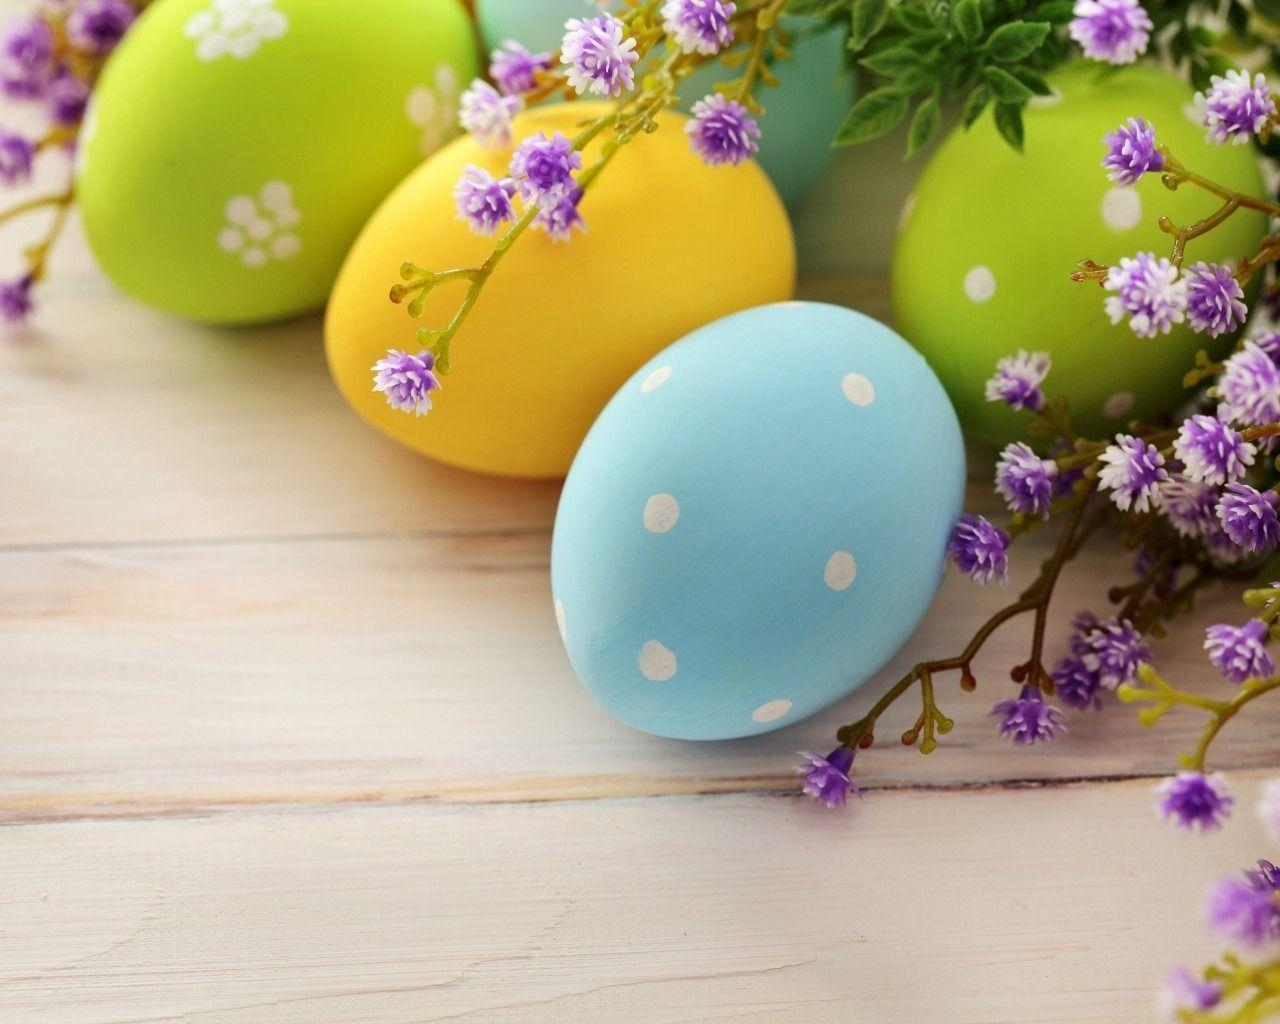 easter wallpapers hd - photo #29